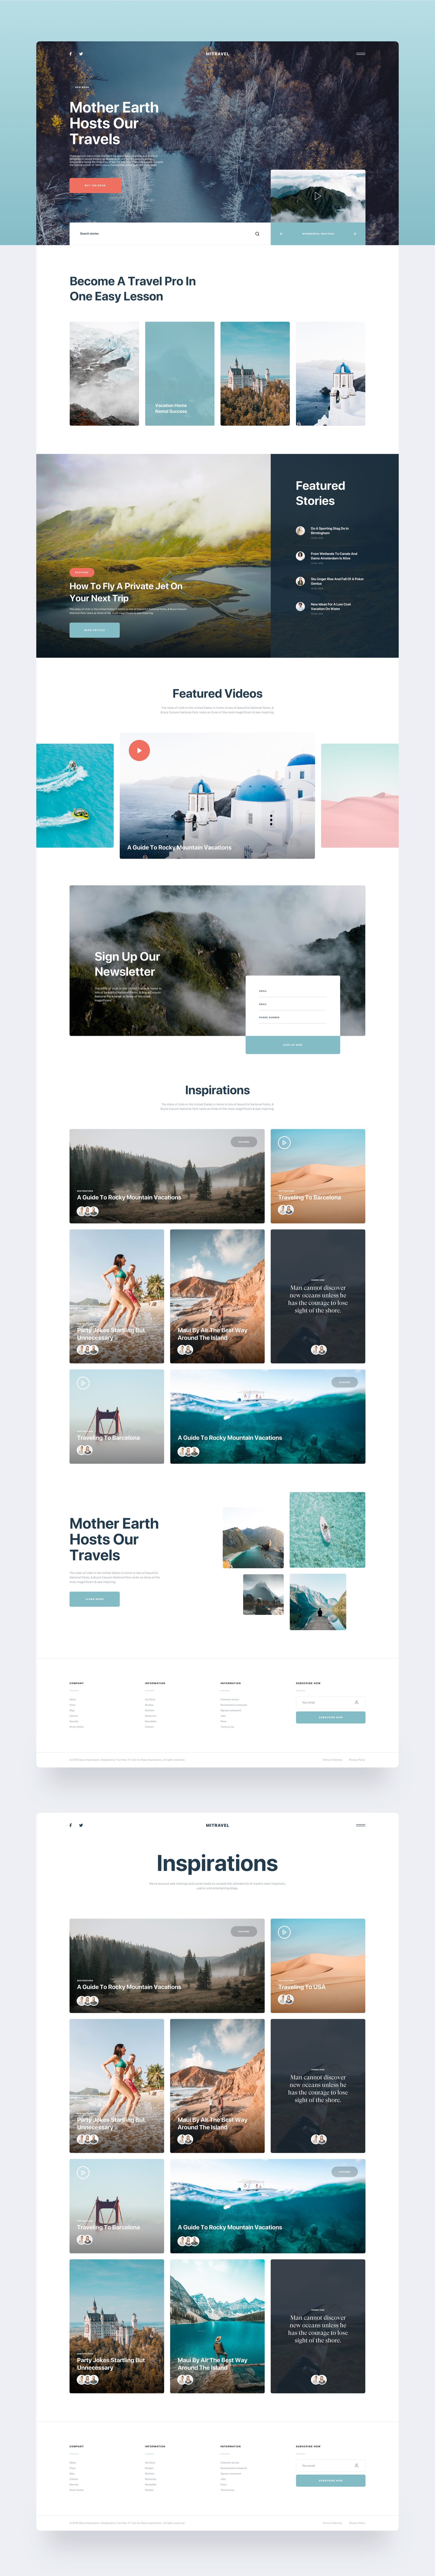 MI Travel - Free Sketch Template - MI Travel is a sketch blog template to help you build a clean blog style for travel website or creative blog. There are 6 artboards included in the design. The artboard is fully editable, layered, carefully organized.